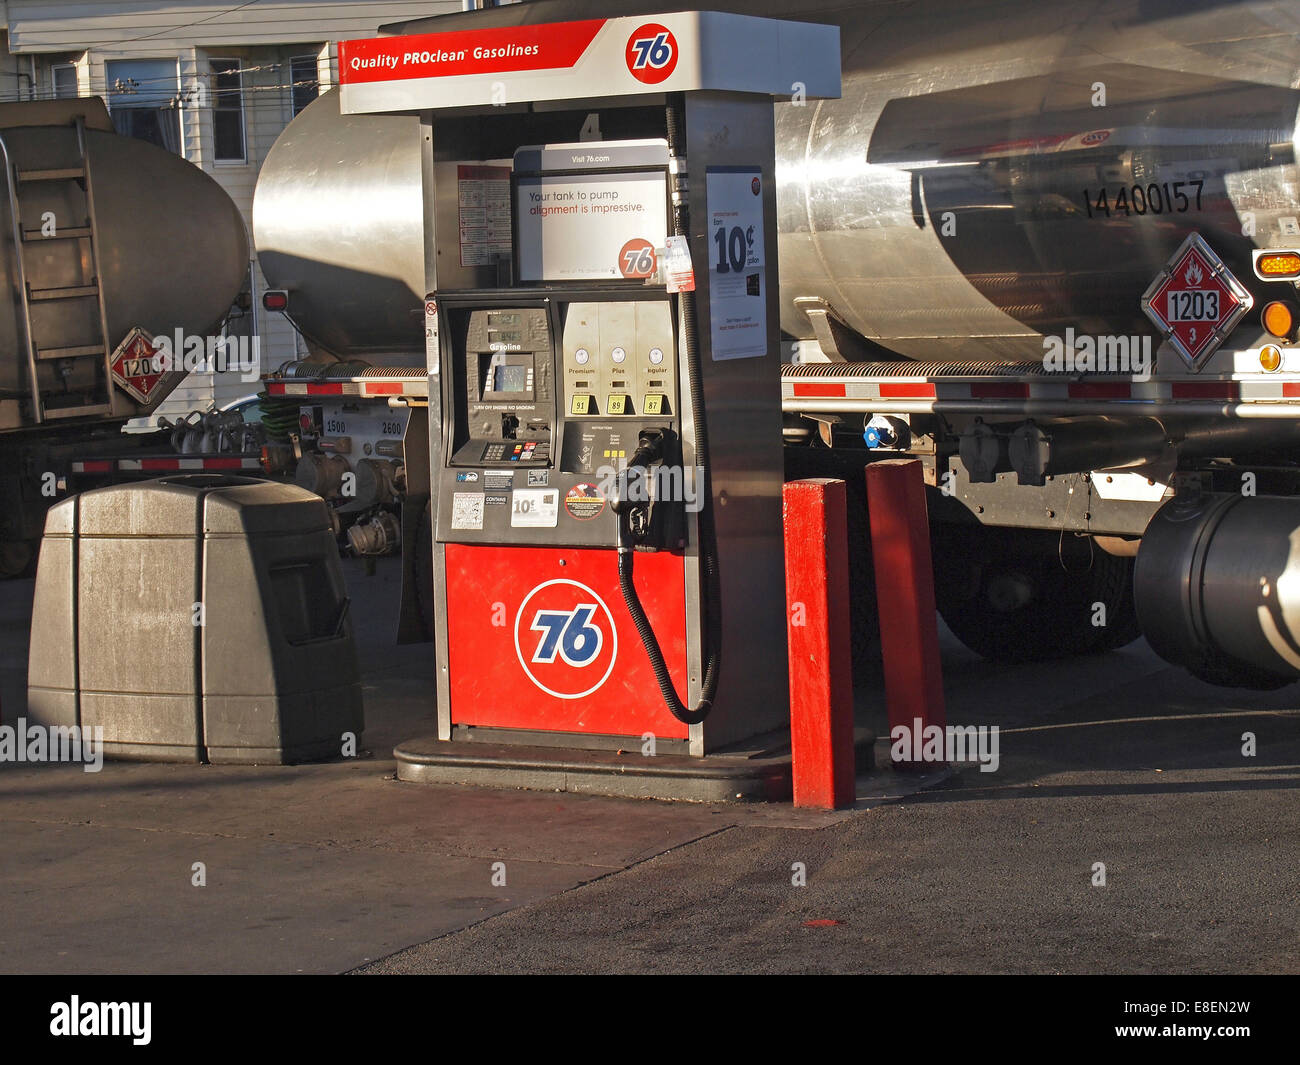 Gasoline delivery truck at station - Stock Image